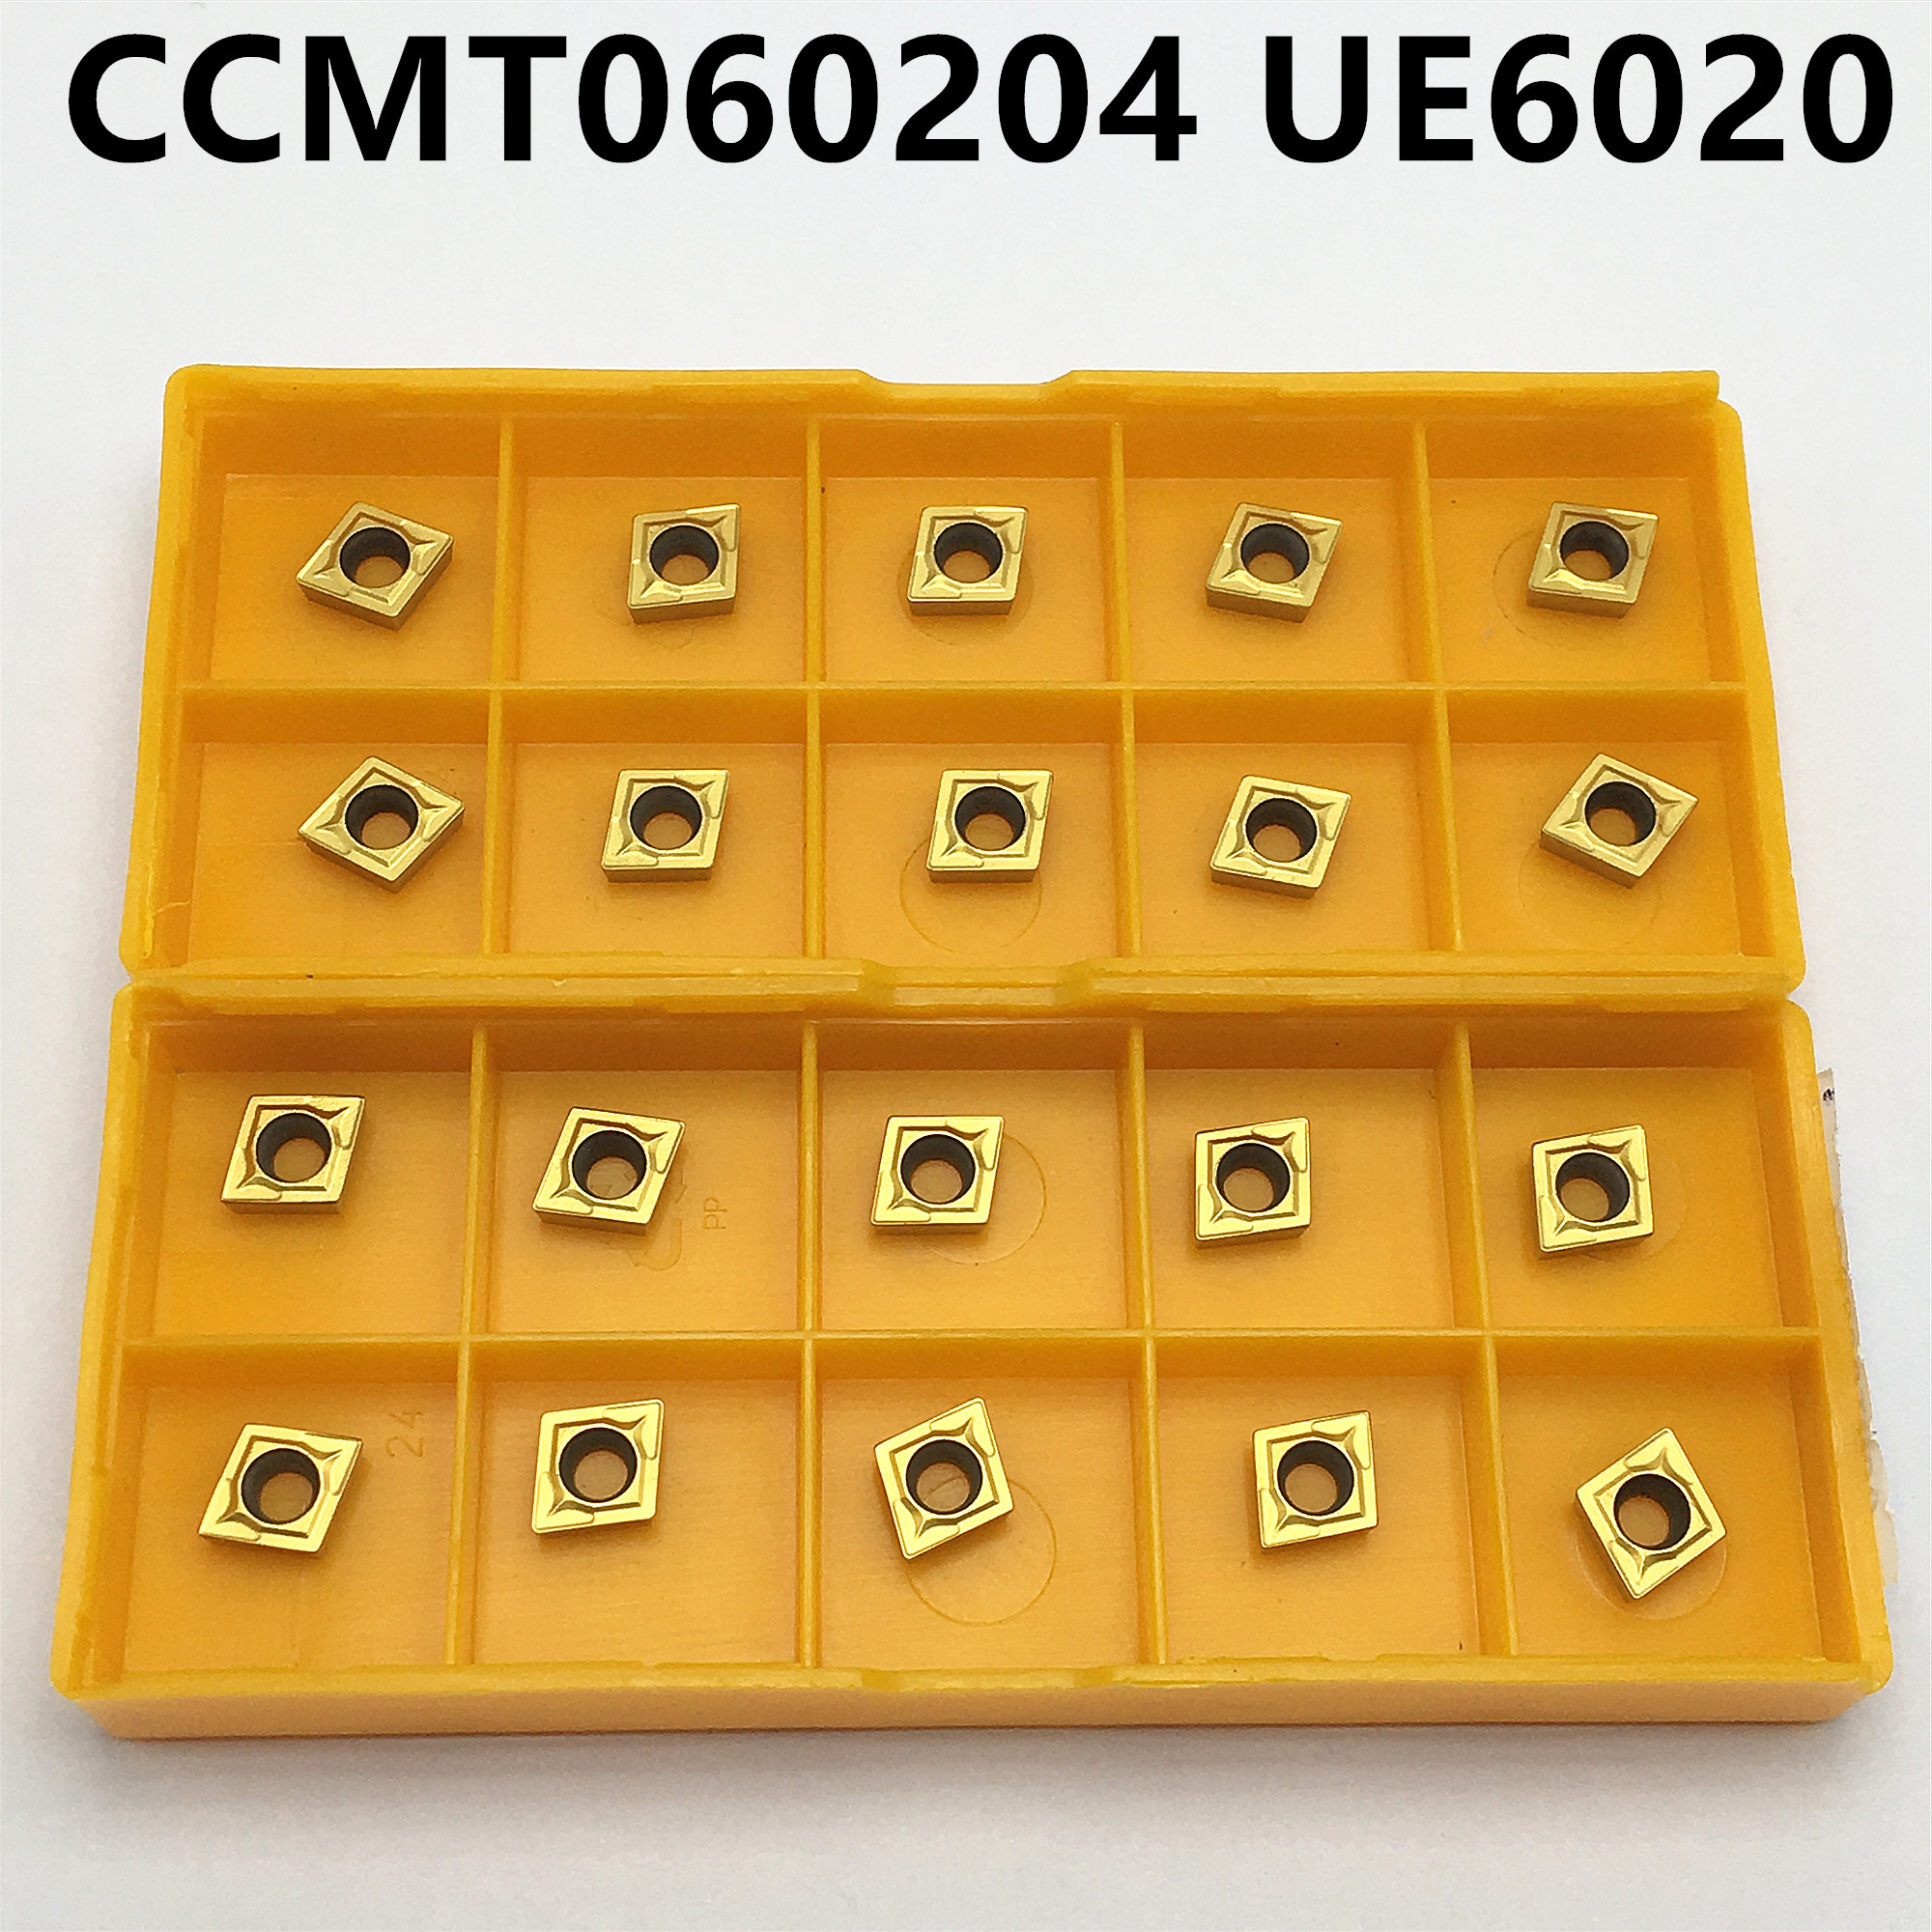 Carbide Insert CCMT060204 UE6020 CCMT060204 US735 CCMT060204 VP15TF Cutting Tool CNC Turning Tool CCMT 060204 Milling Cutter